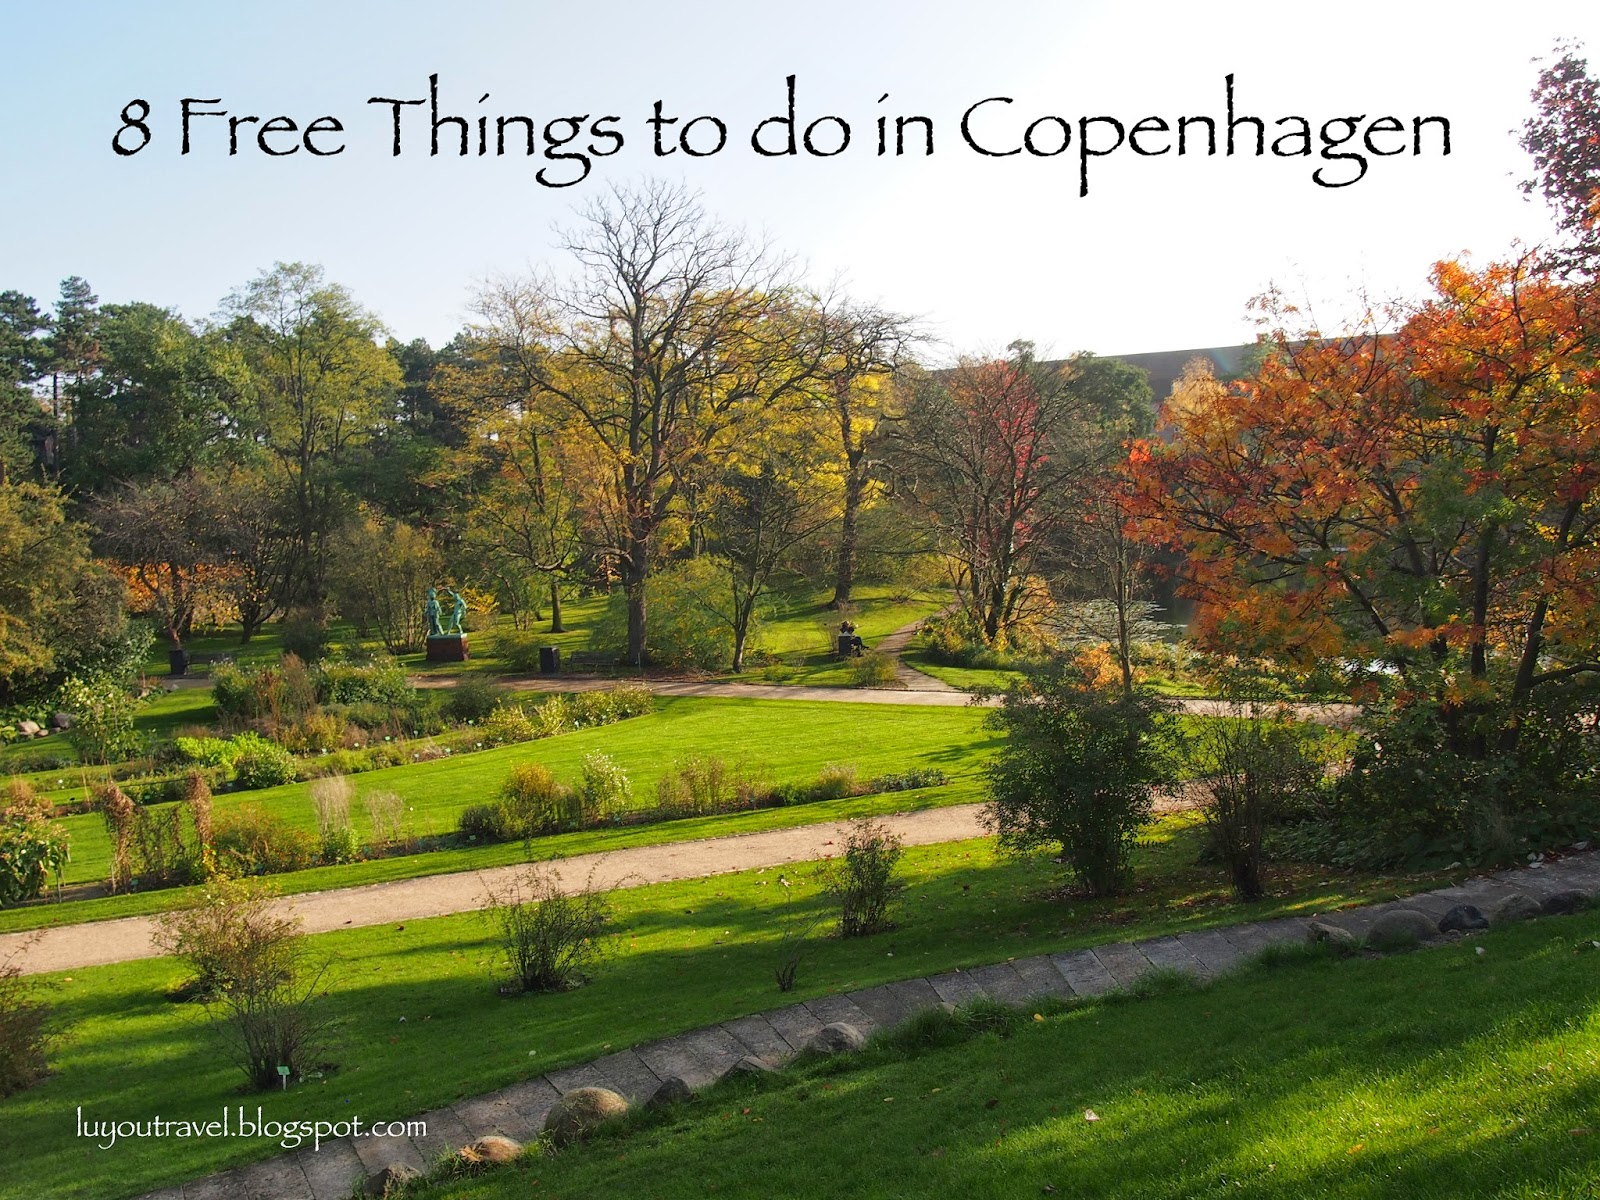 A view of the Copenhagen botanical garden with fall color leaves